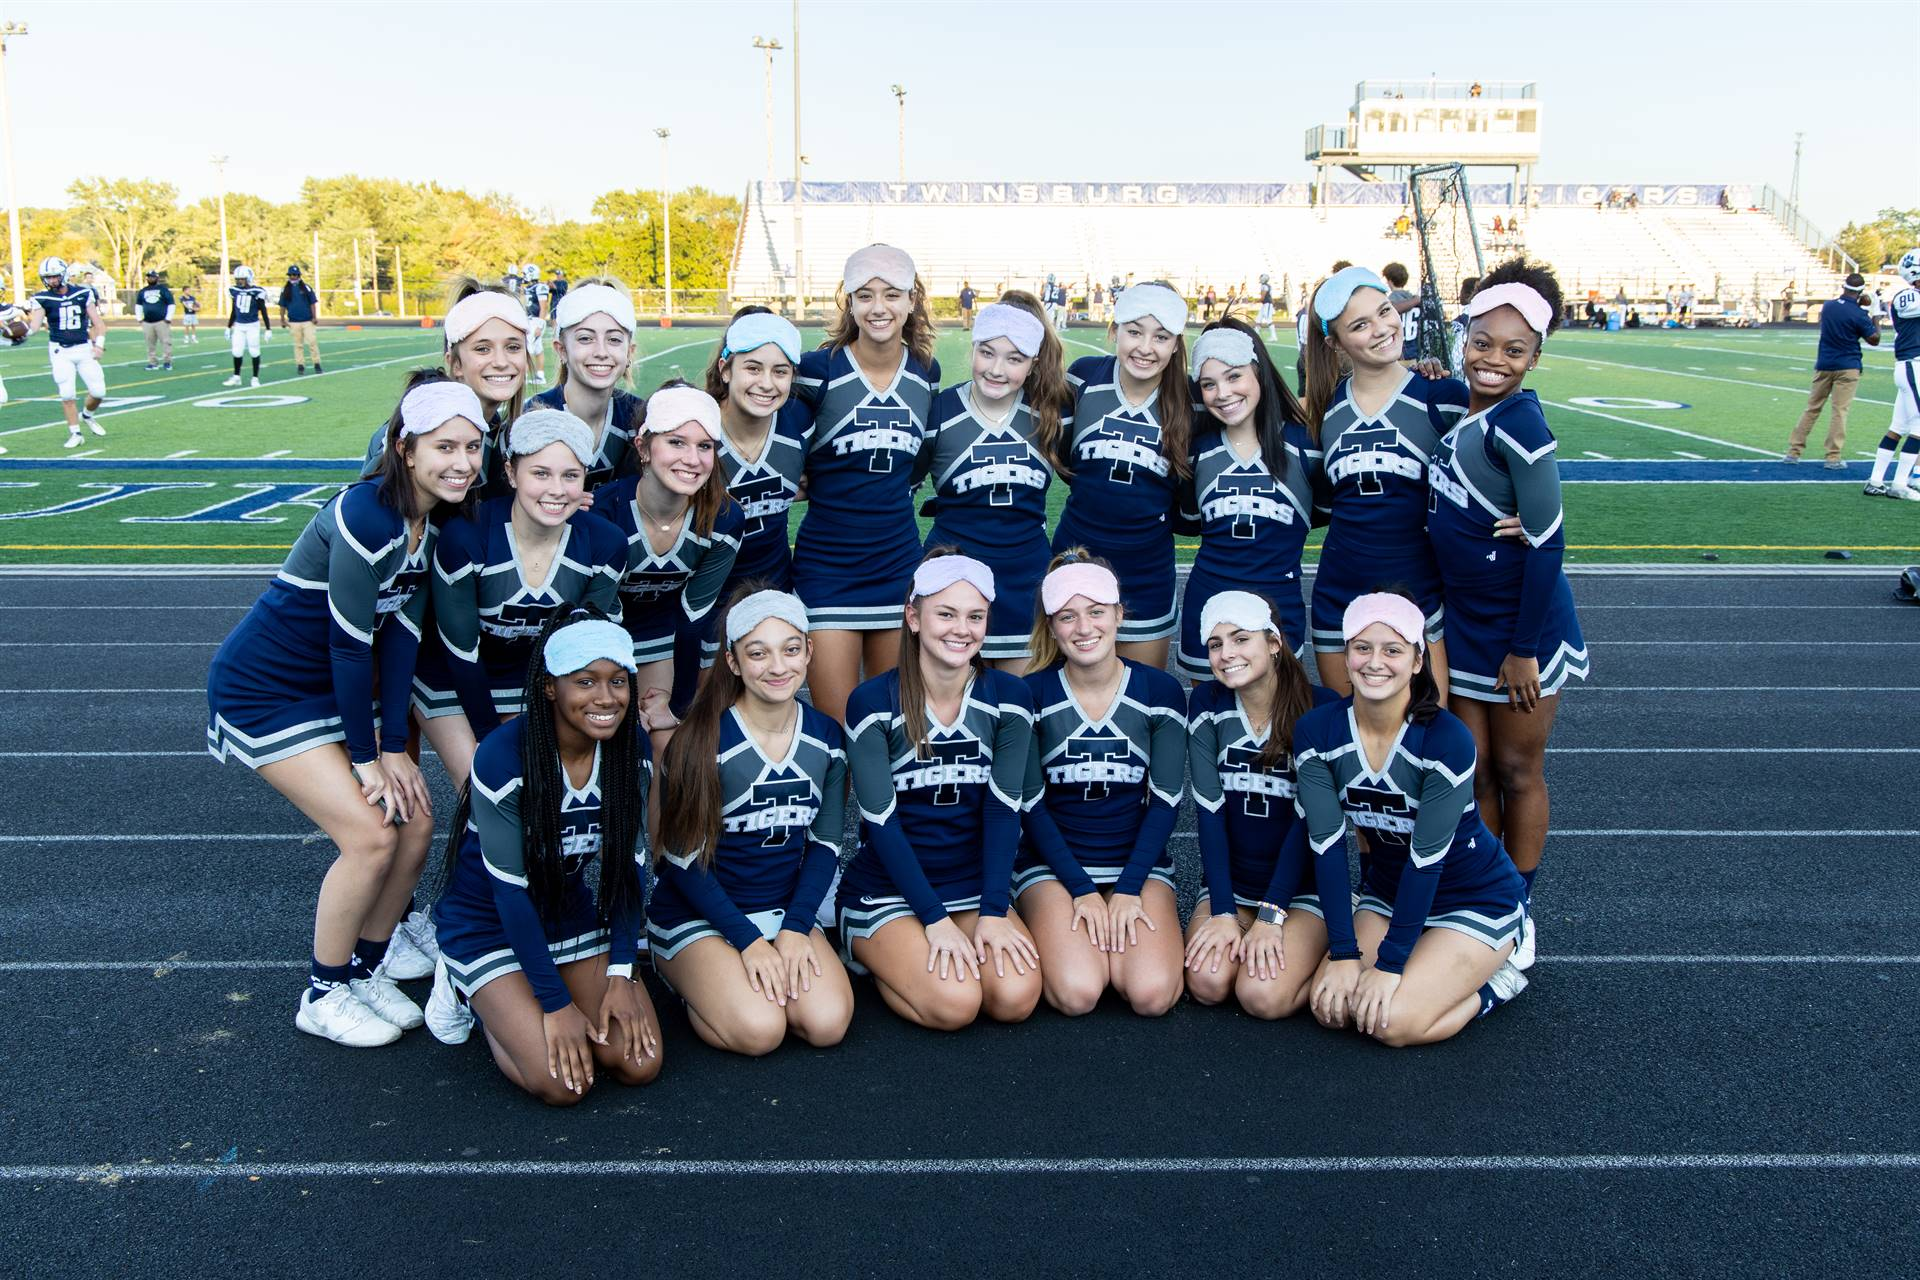 The Cheerleaders posing for a picture together.